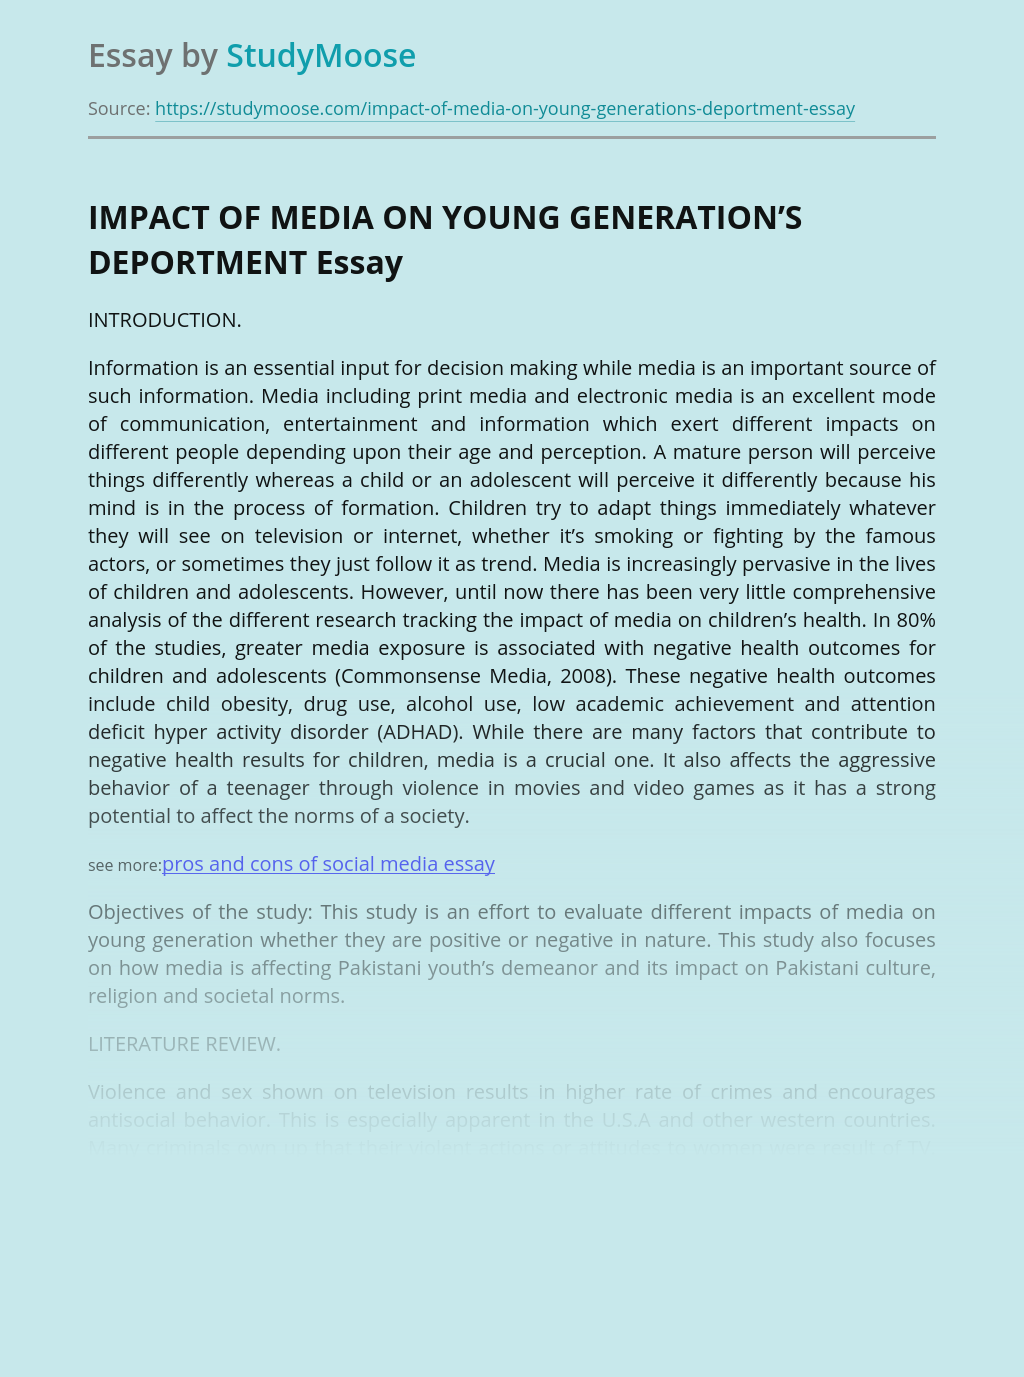 IMPACT OF MEDIA ON YOUNG GENERATION'S DEPORTMENT